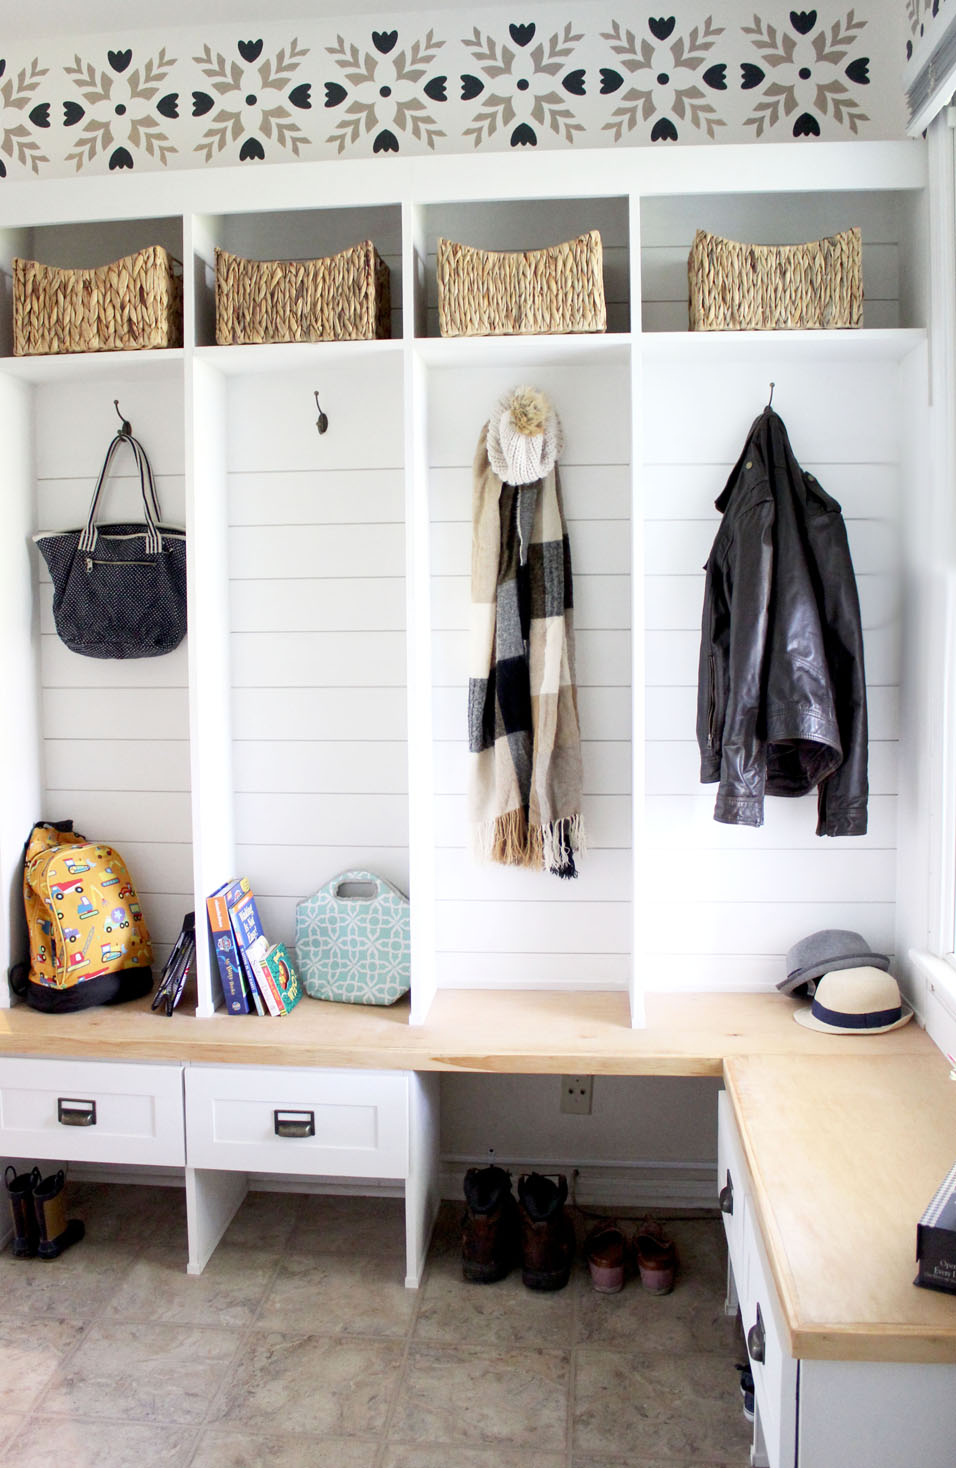 Cubby shelves in mudroom holding various belongings